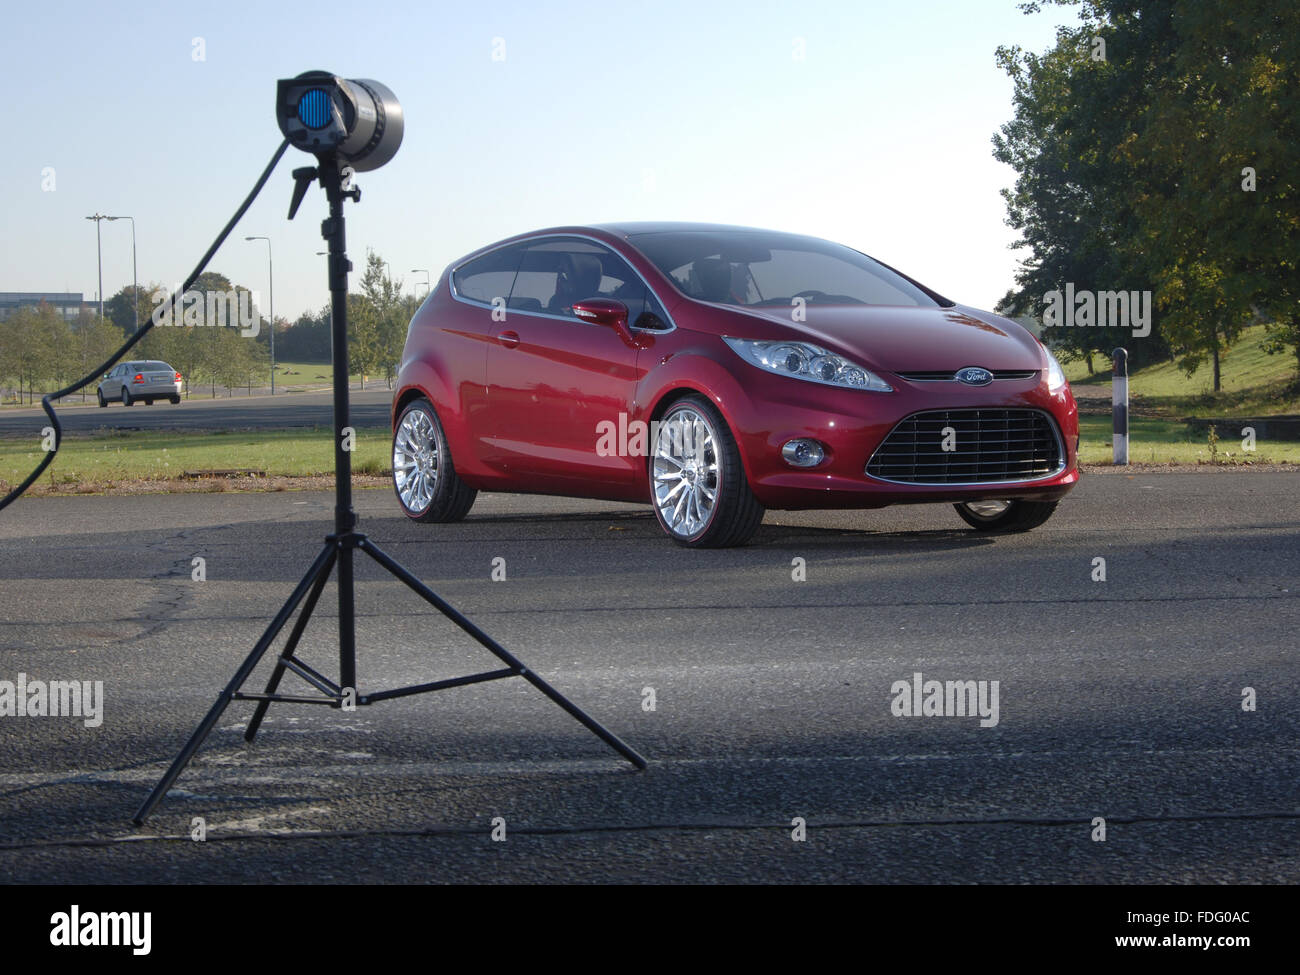 2007 Ford Verve concept car which became the Mk6 sixth generation Ford Fiesta Stock Photo